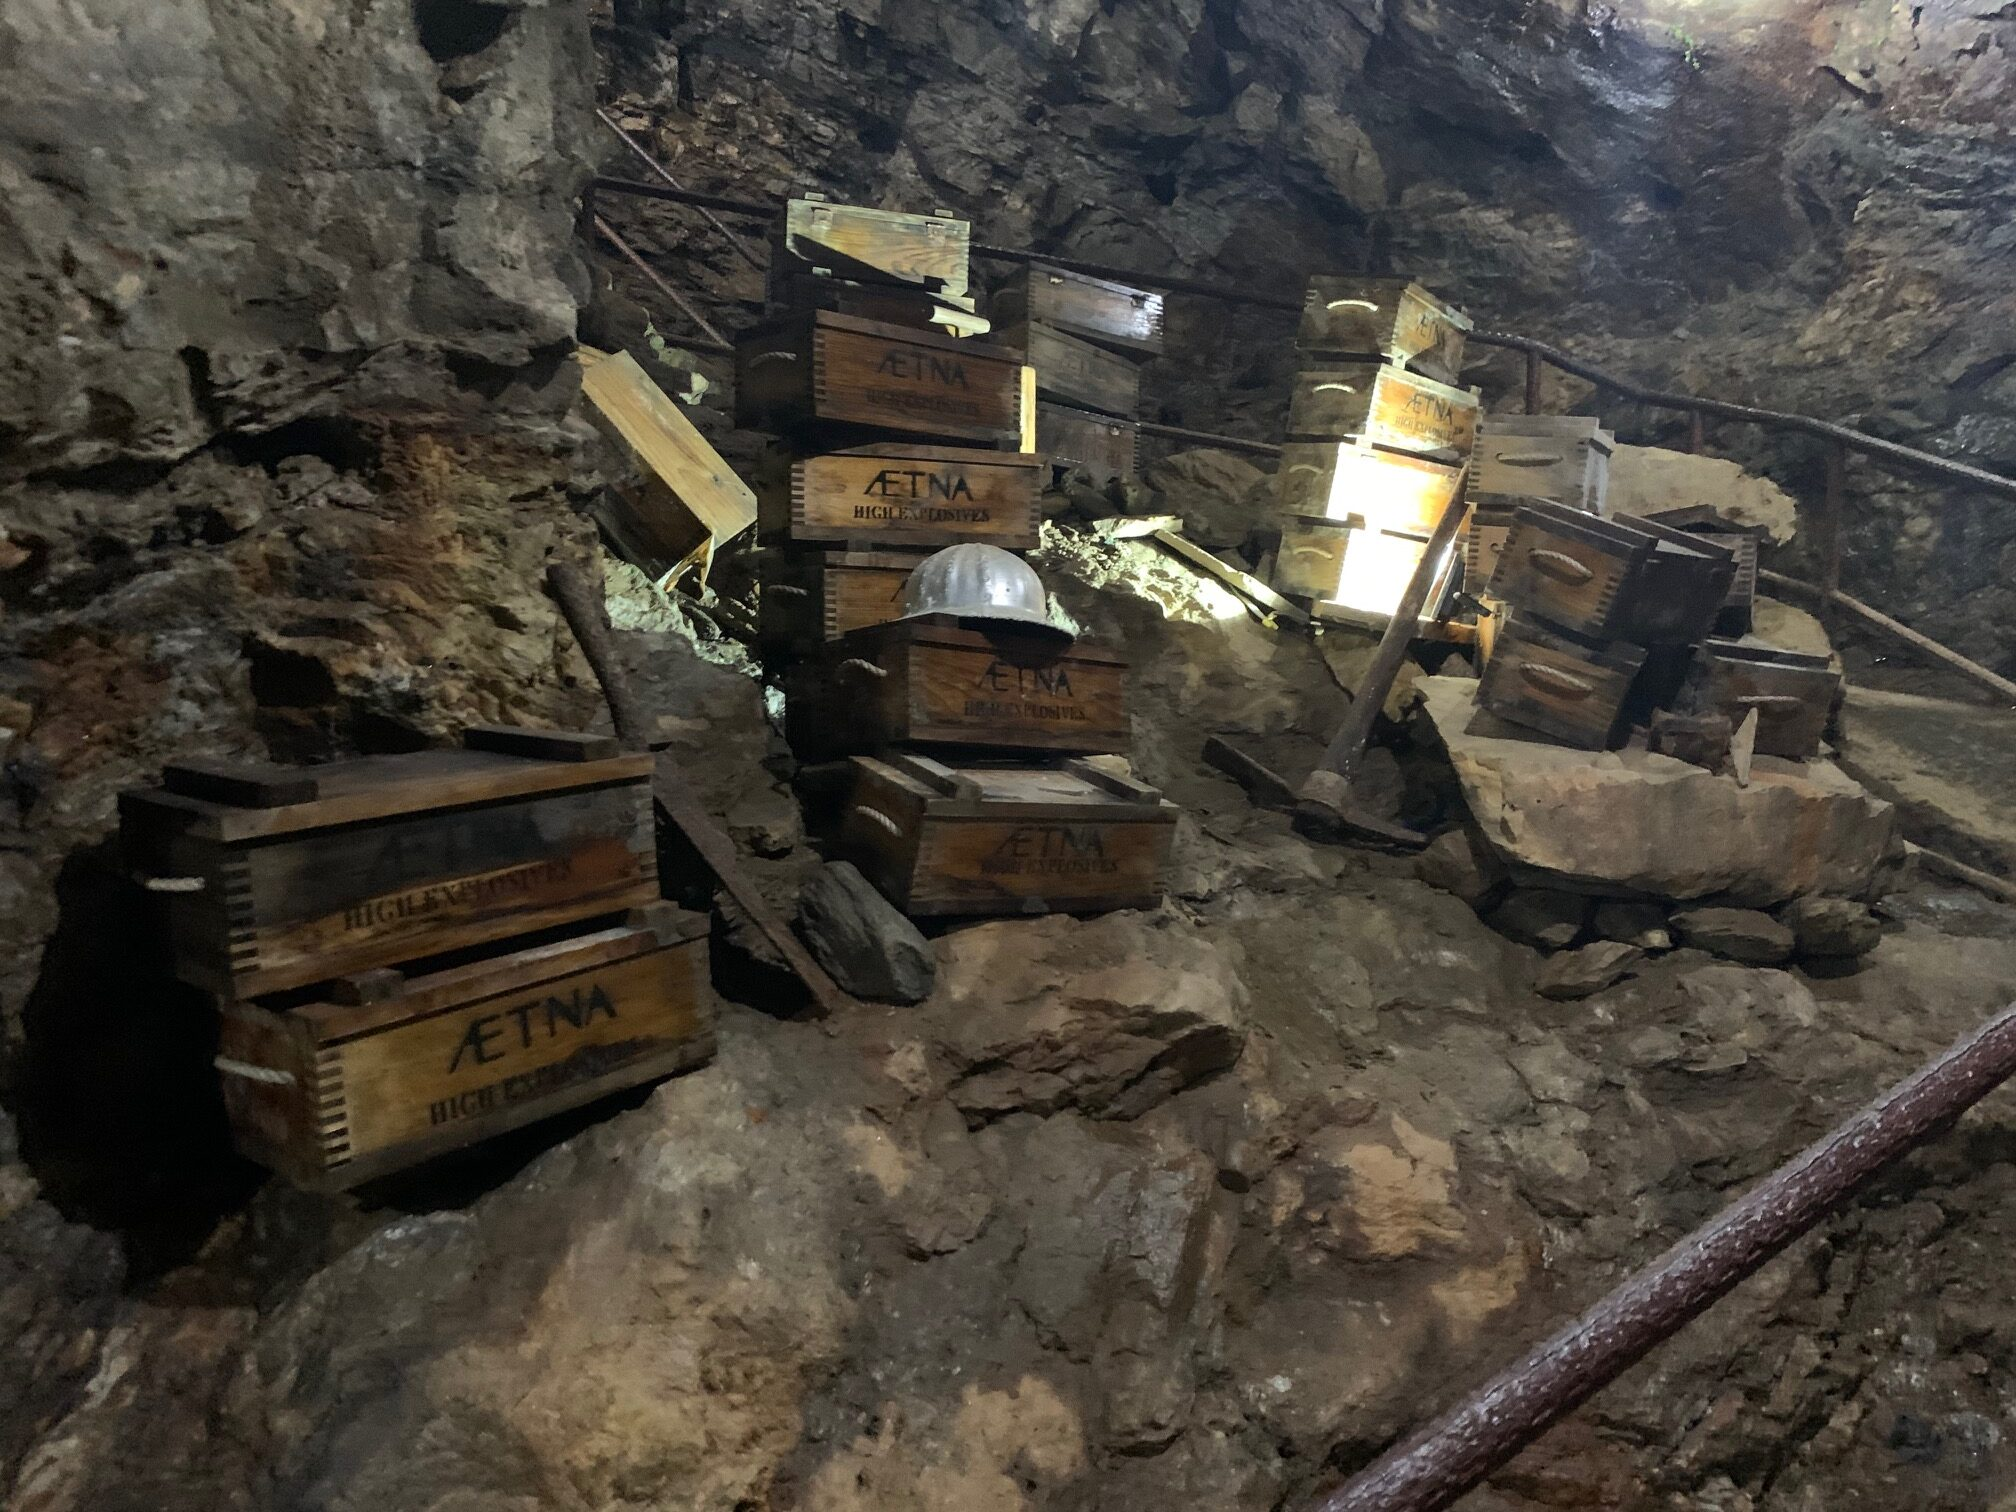 Gold Mine Explosives